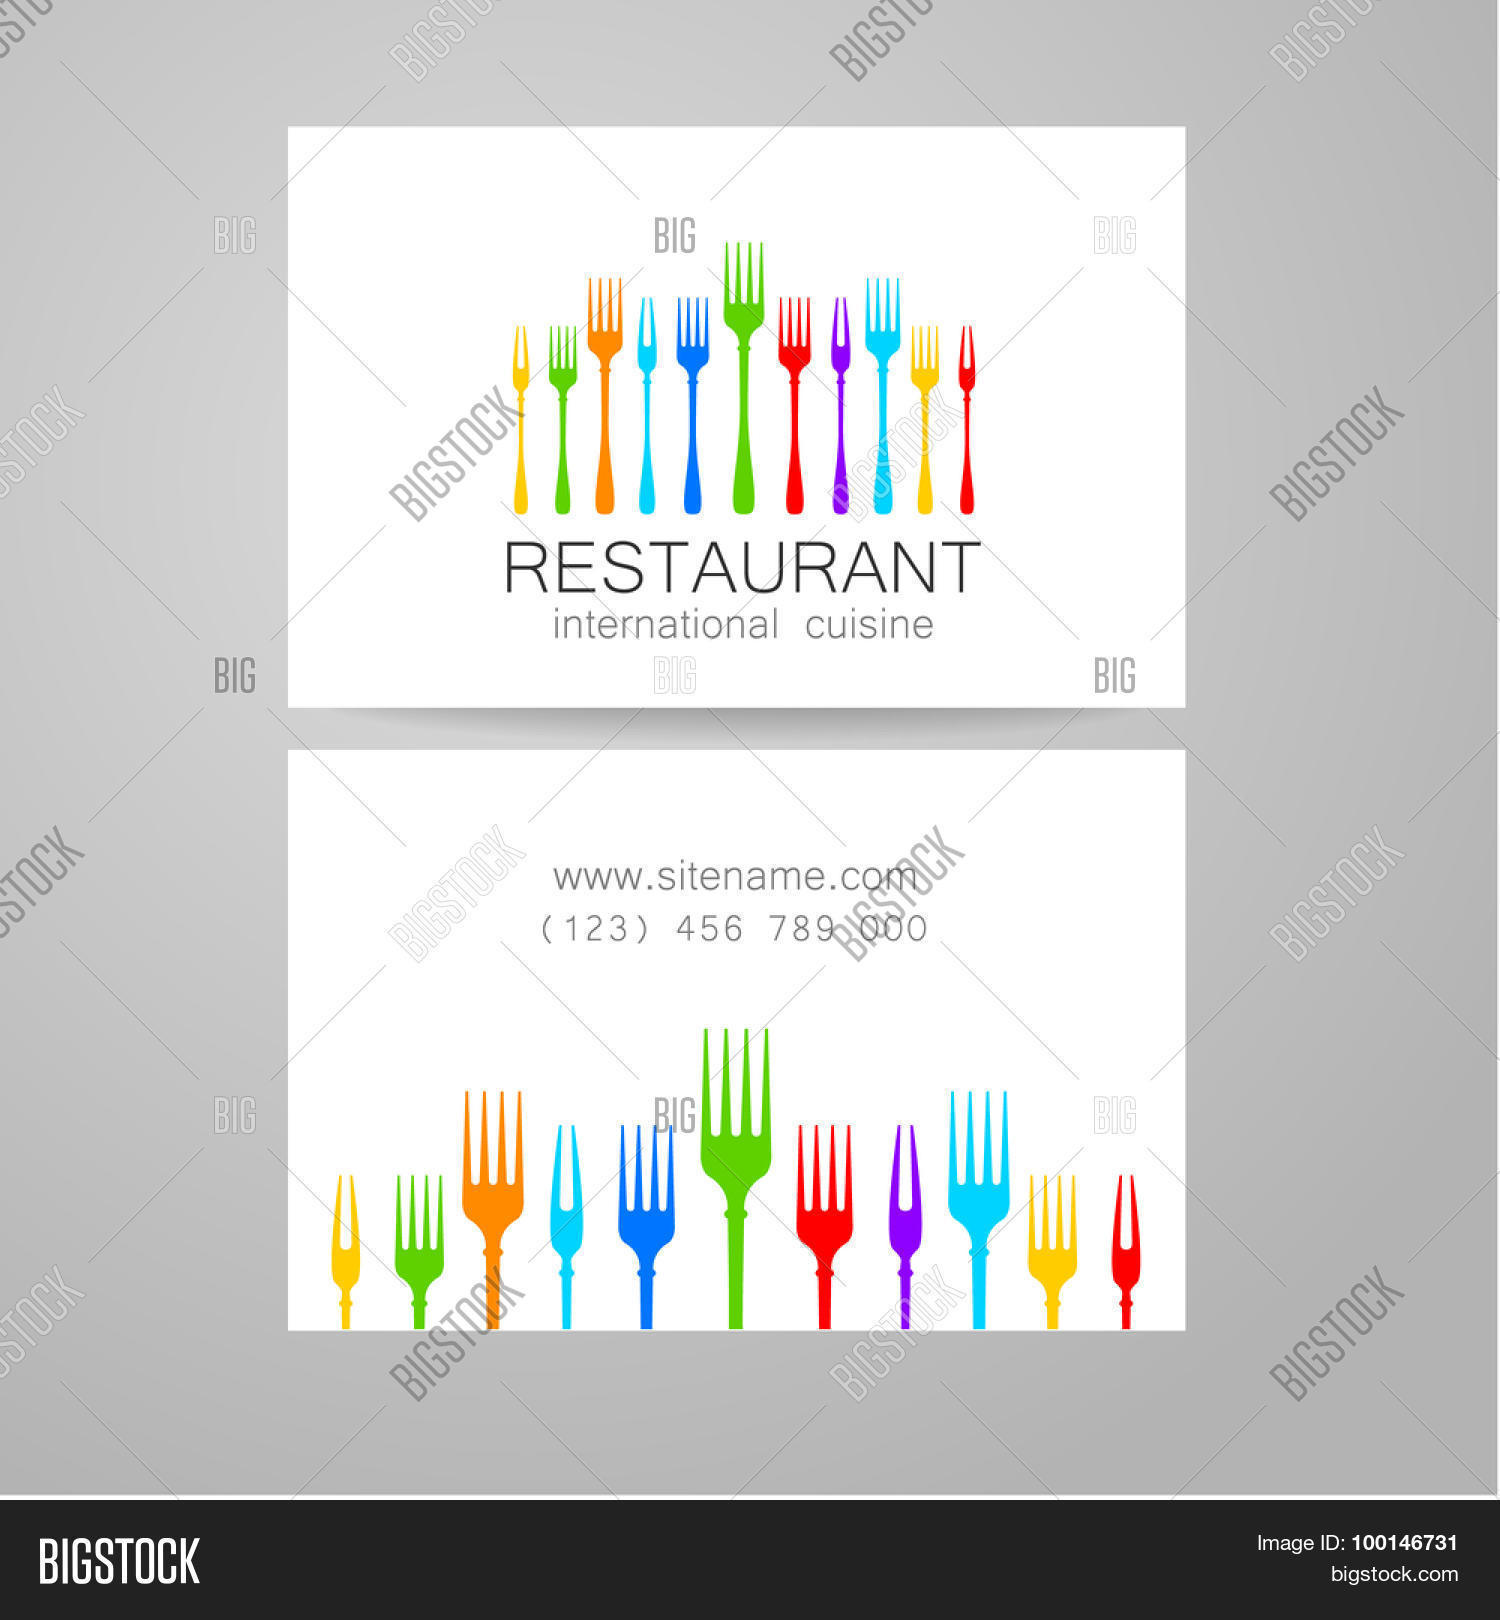 Restaurant logo template design vector photo bigstock the concept of corporate style restaurants serving international cuisine create a lightbox magicingreecefo Image collections